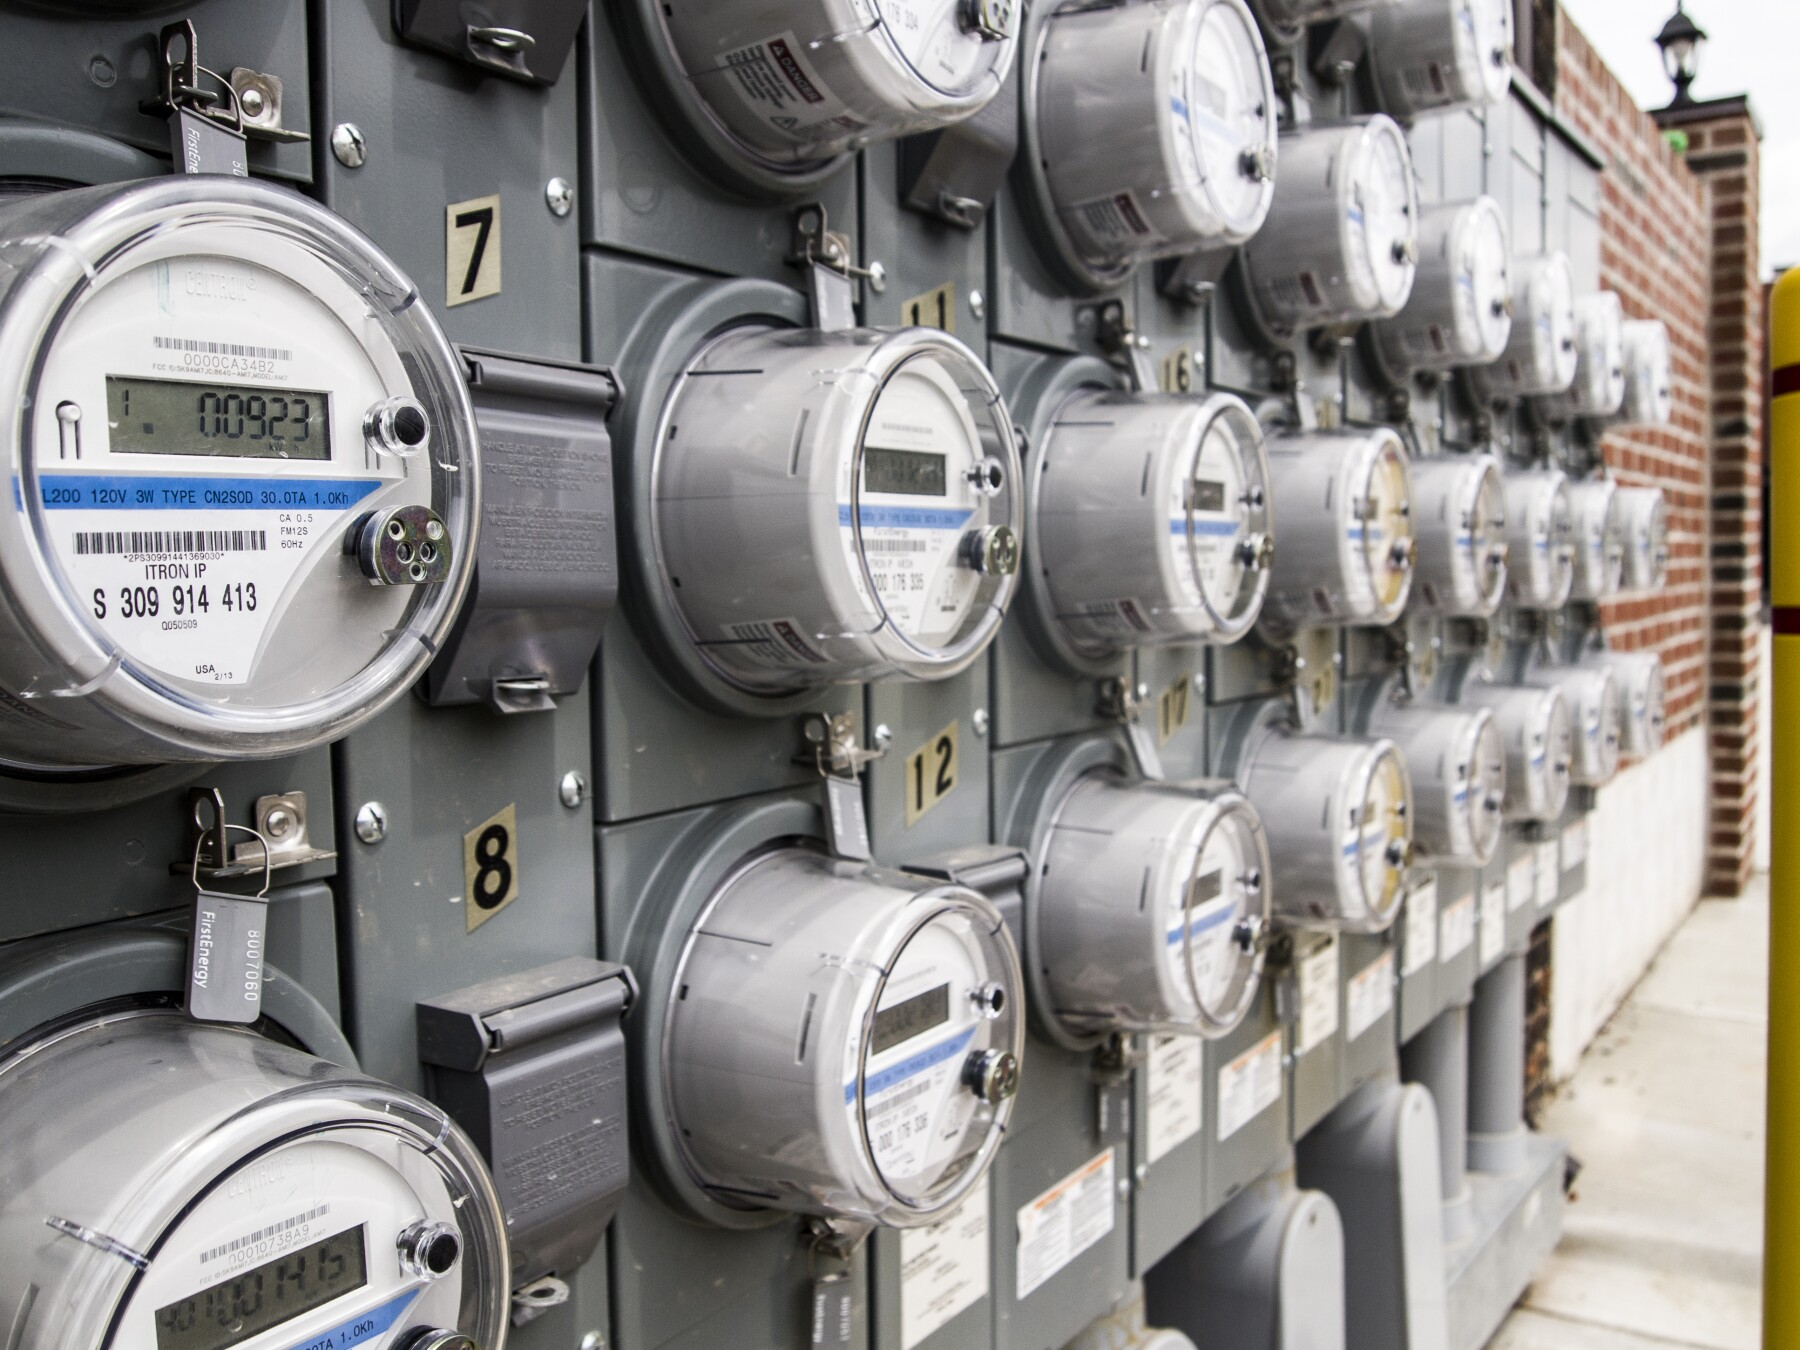 Panel of electric meters